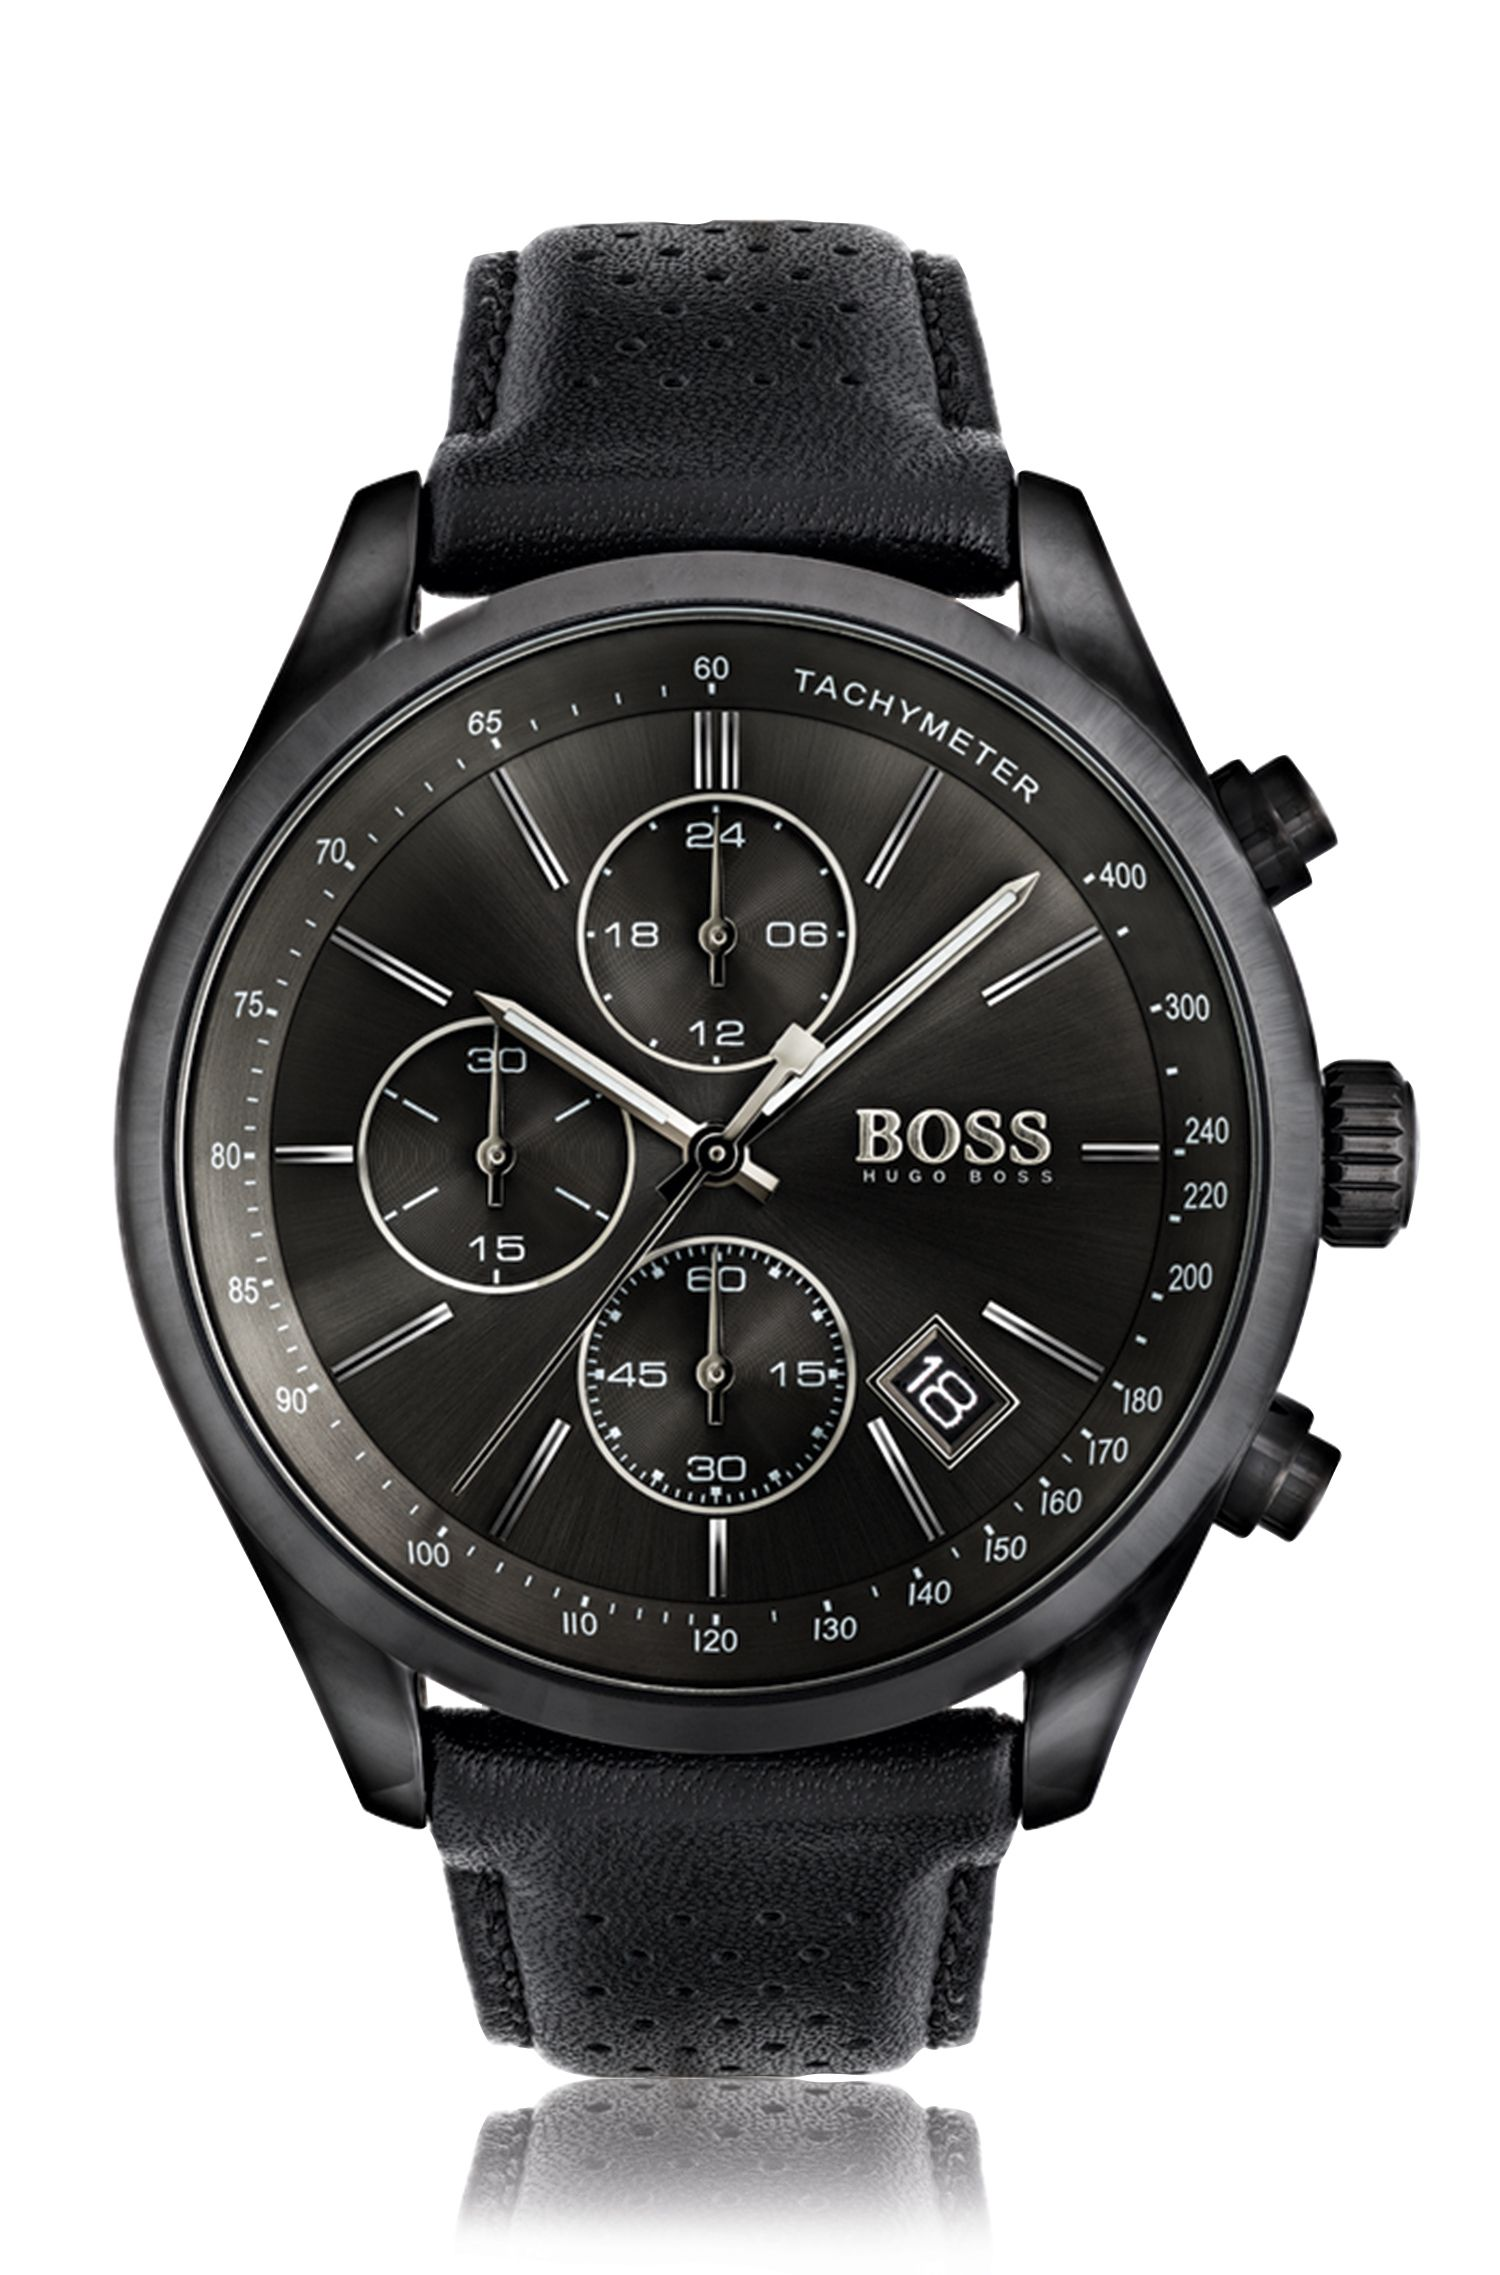 Blackened stainless steel sportswatch with black dial and perforated leather strap